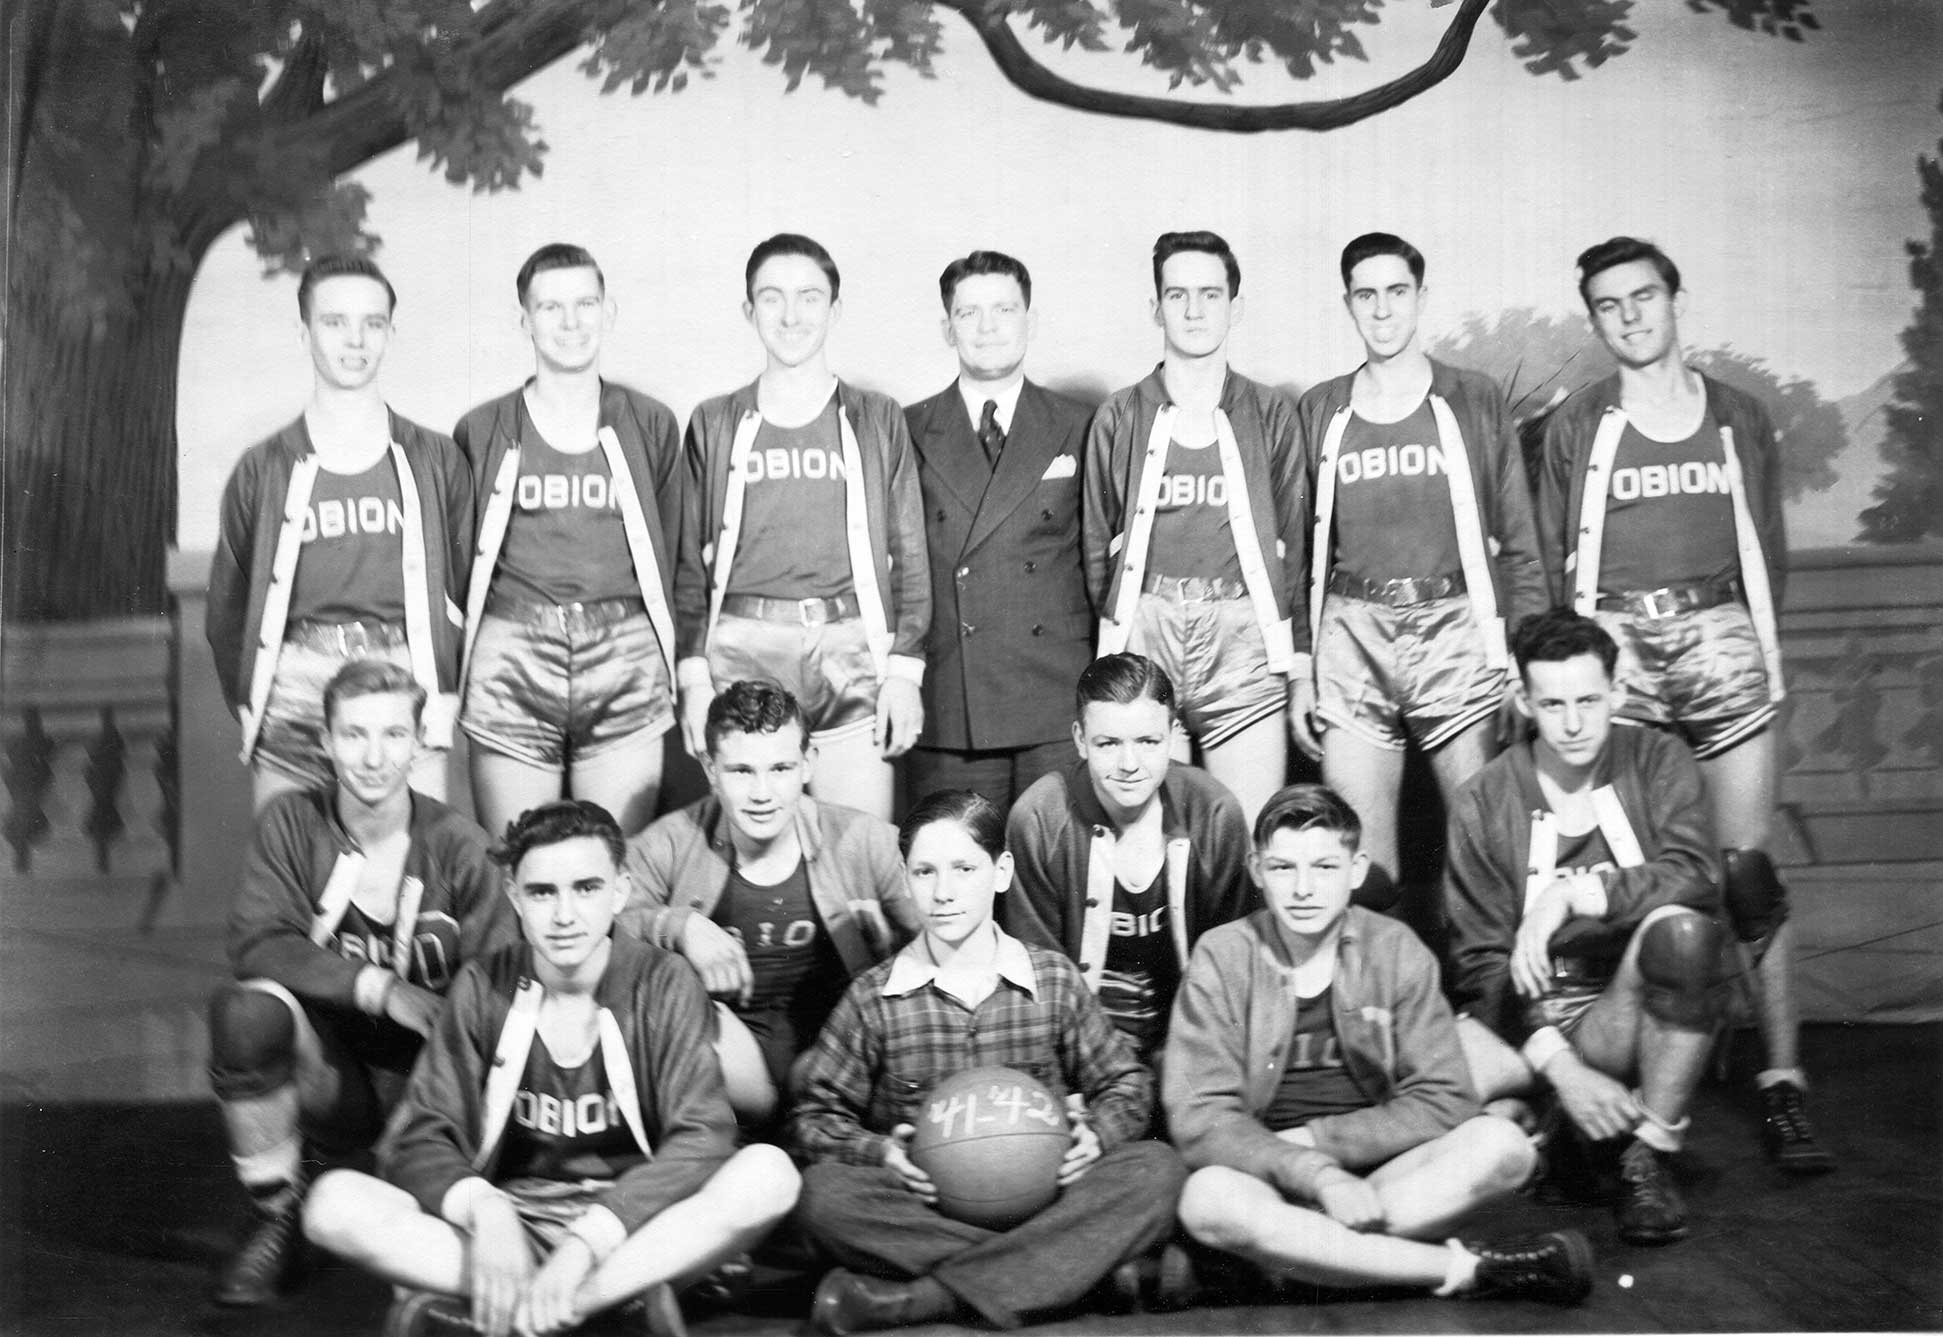 Obion High School Men's Basketball 1941-42